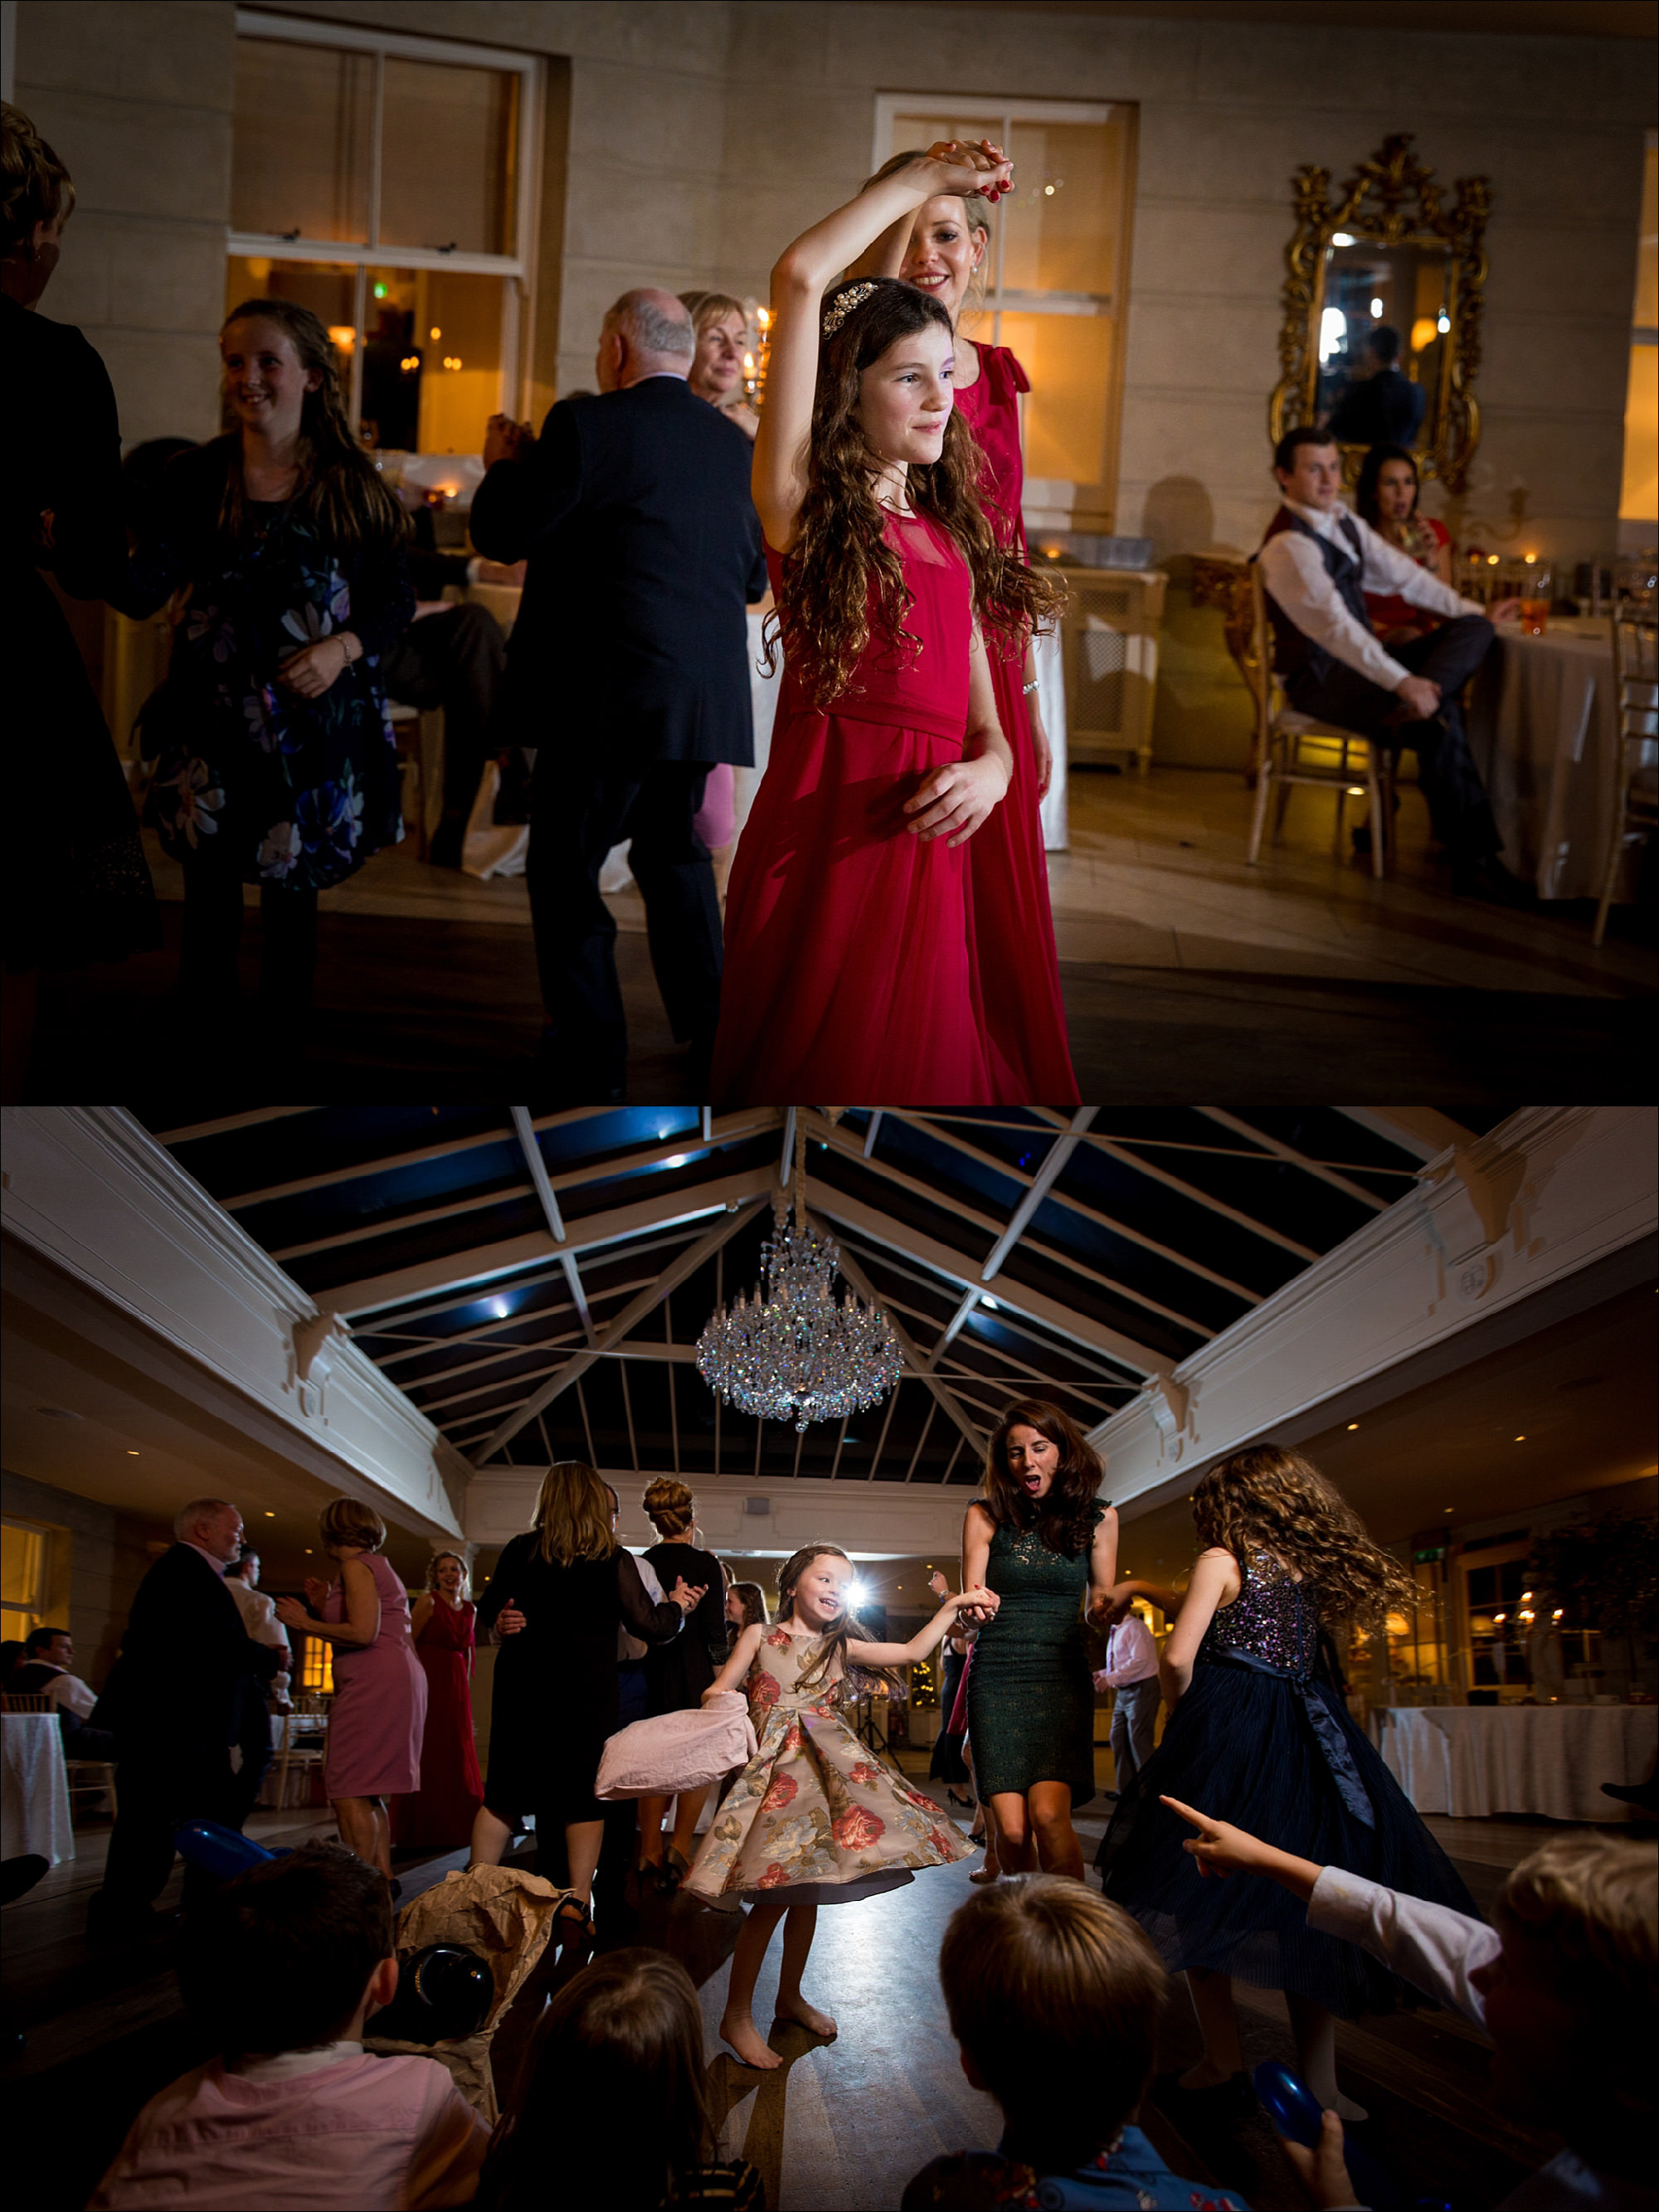 dublin wedding photographer david duignan photography tankardstown weddings slane rathfeigh church ireland 0057